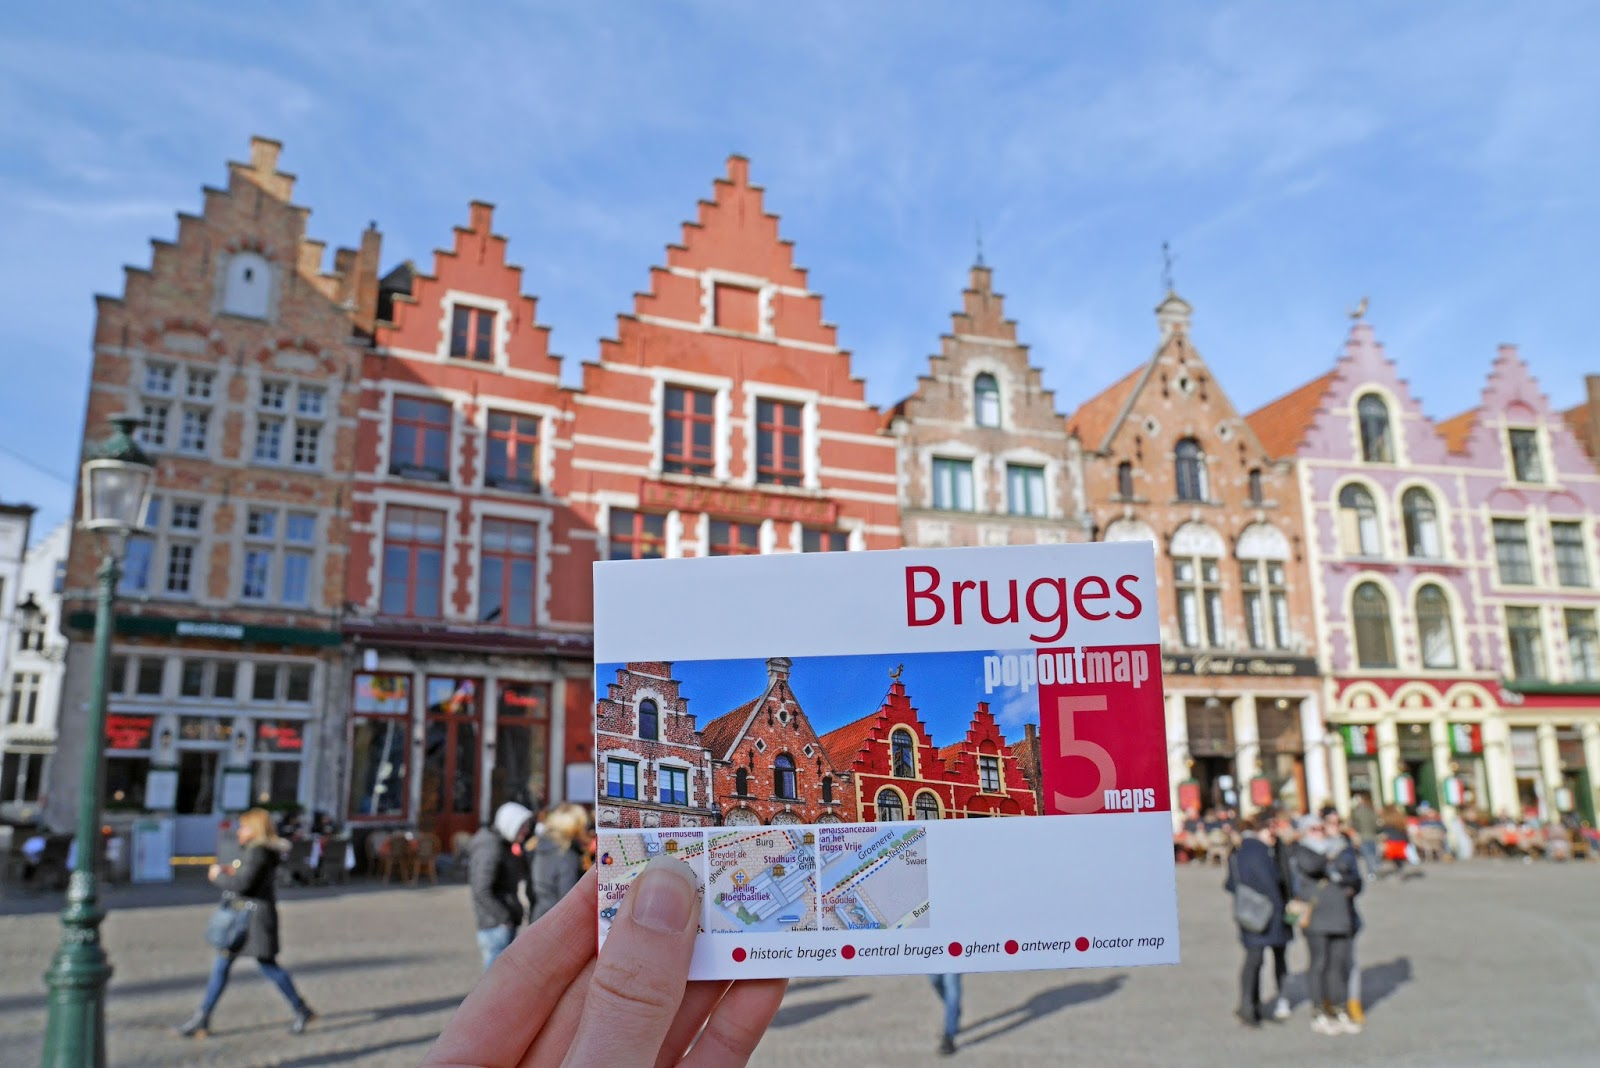 Bruges PopOut map in front of the colourful buildings in Bruges Market Square